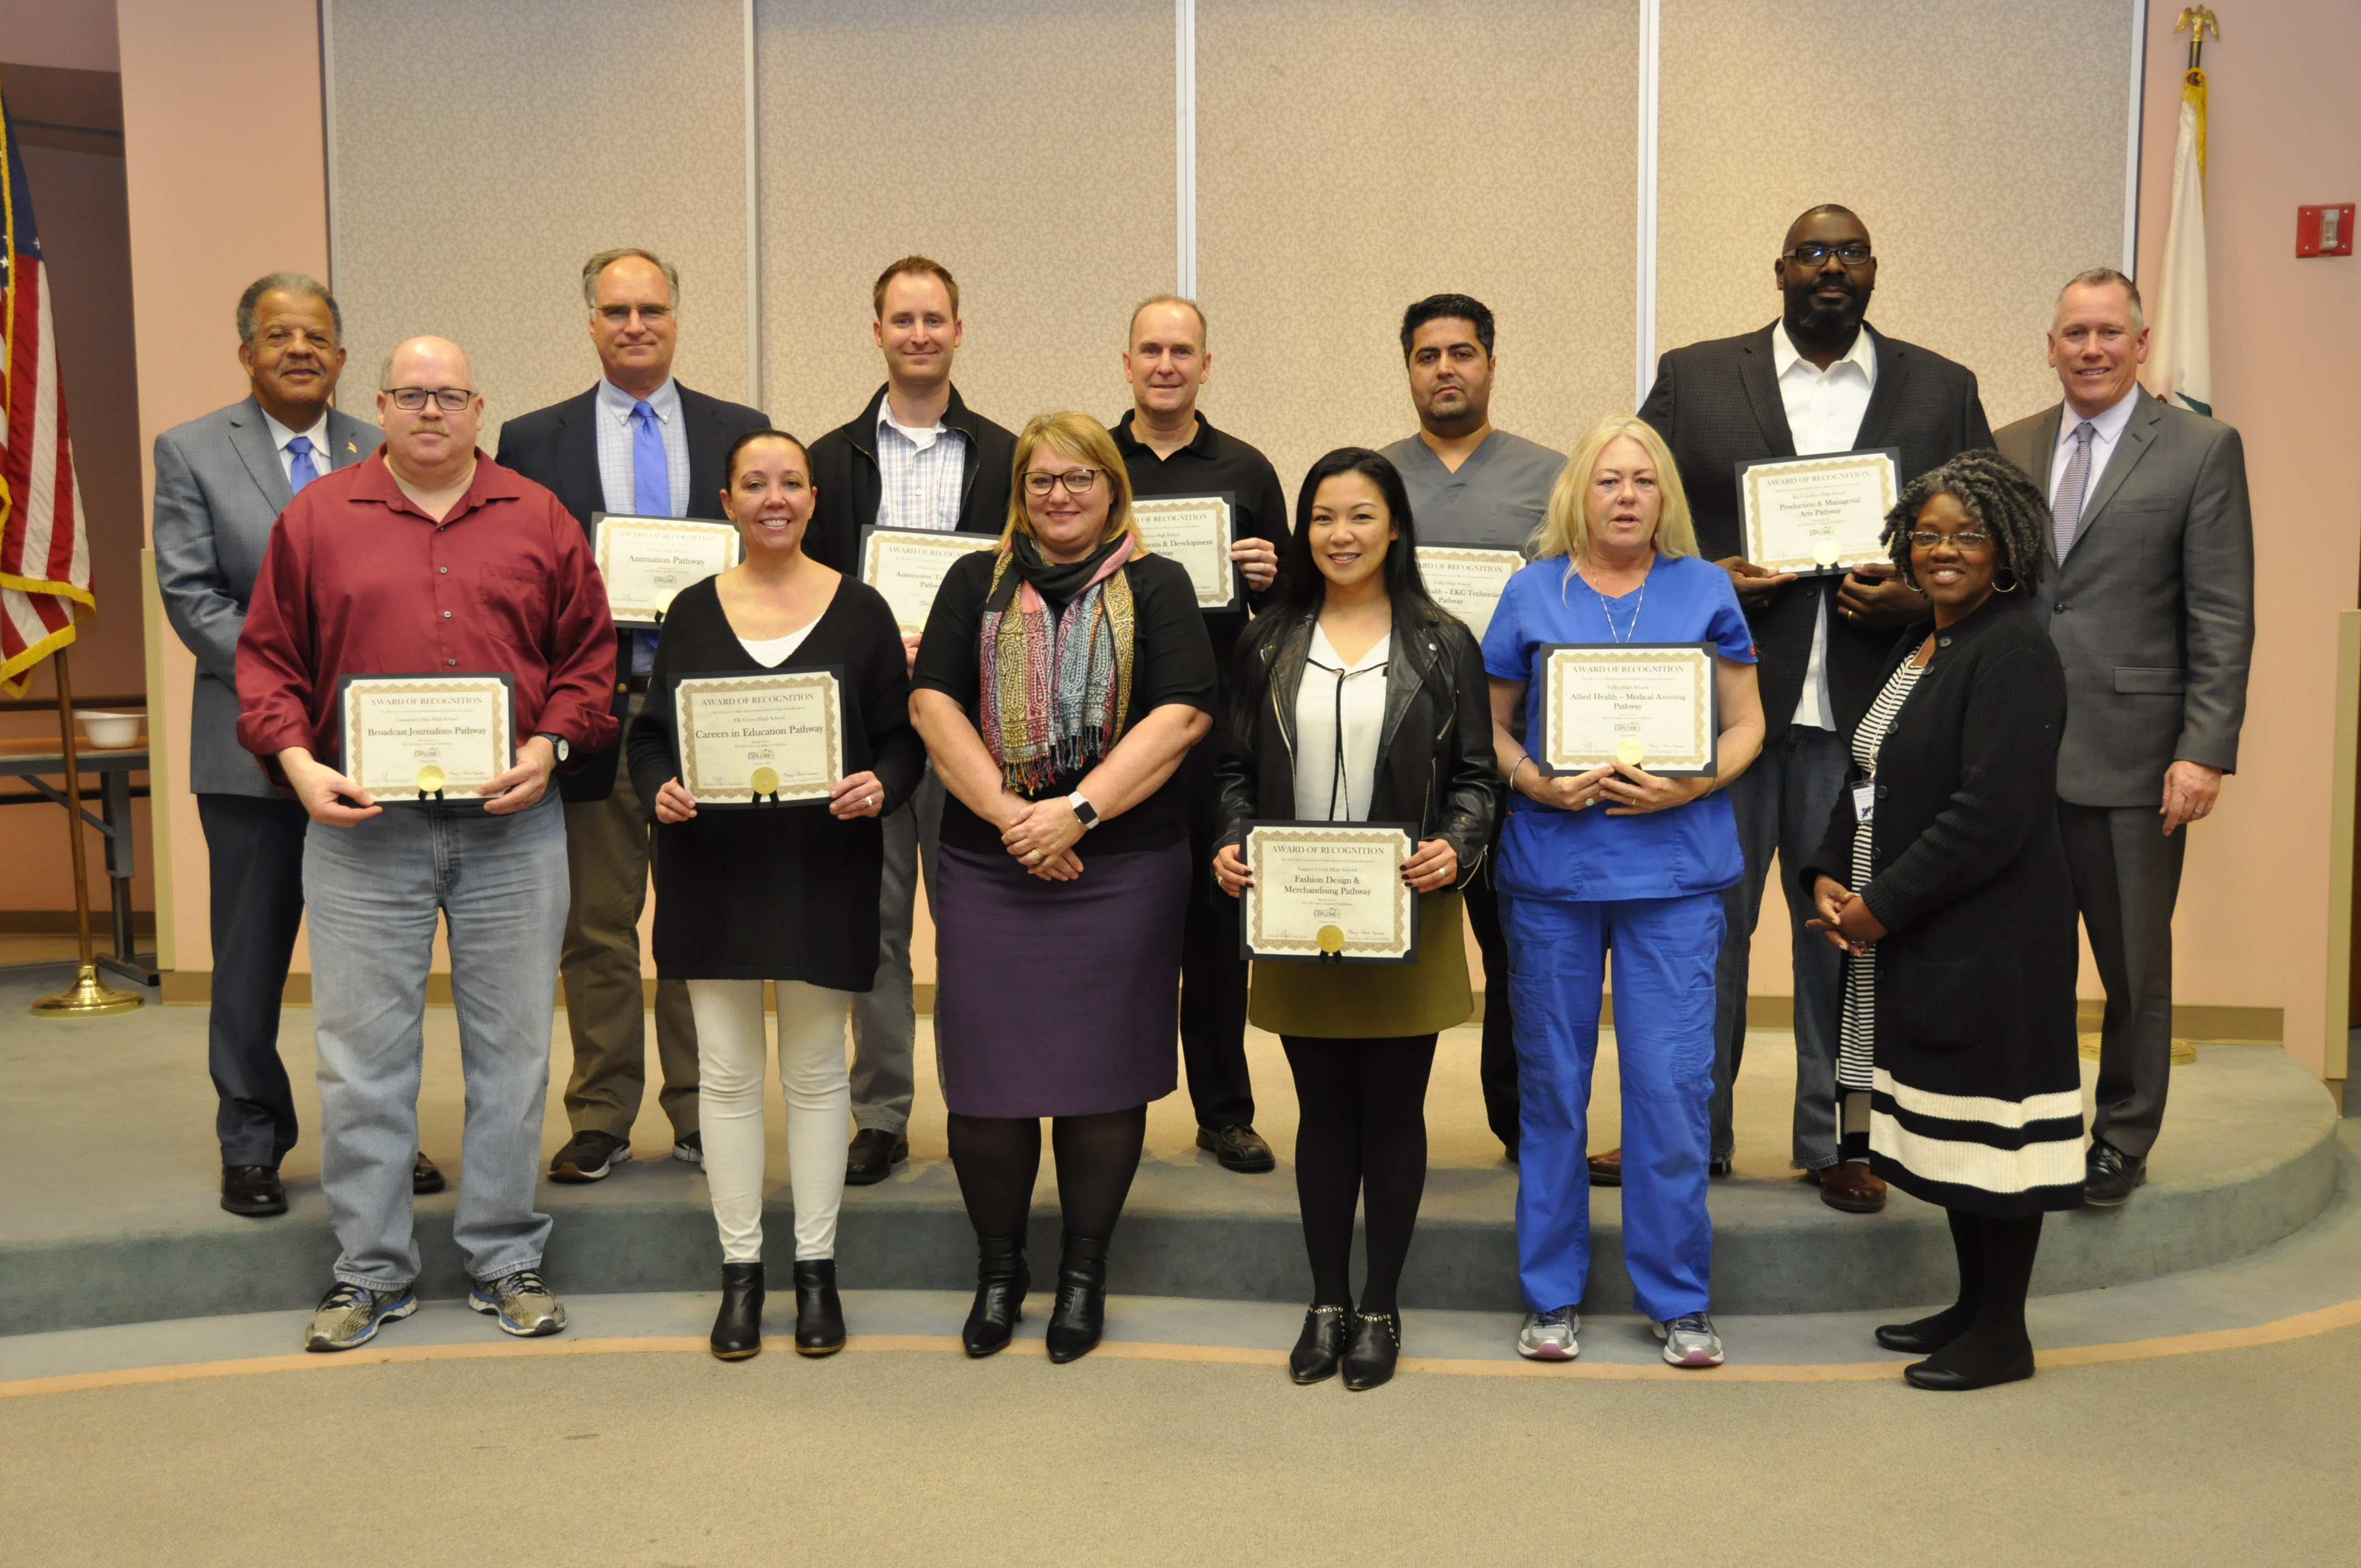 EGUSD Board Recognizes its High Quality CTE Programs